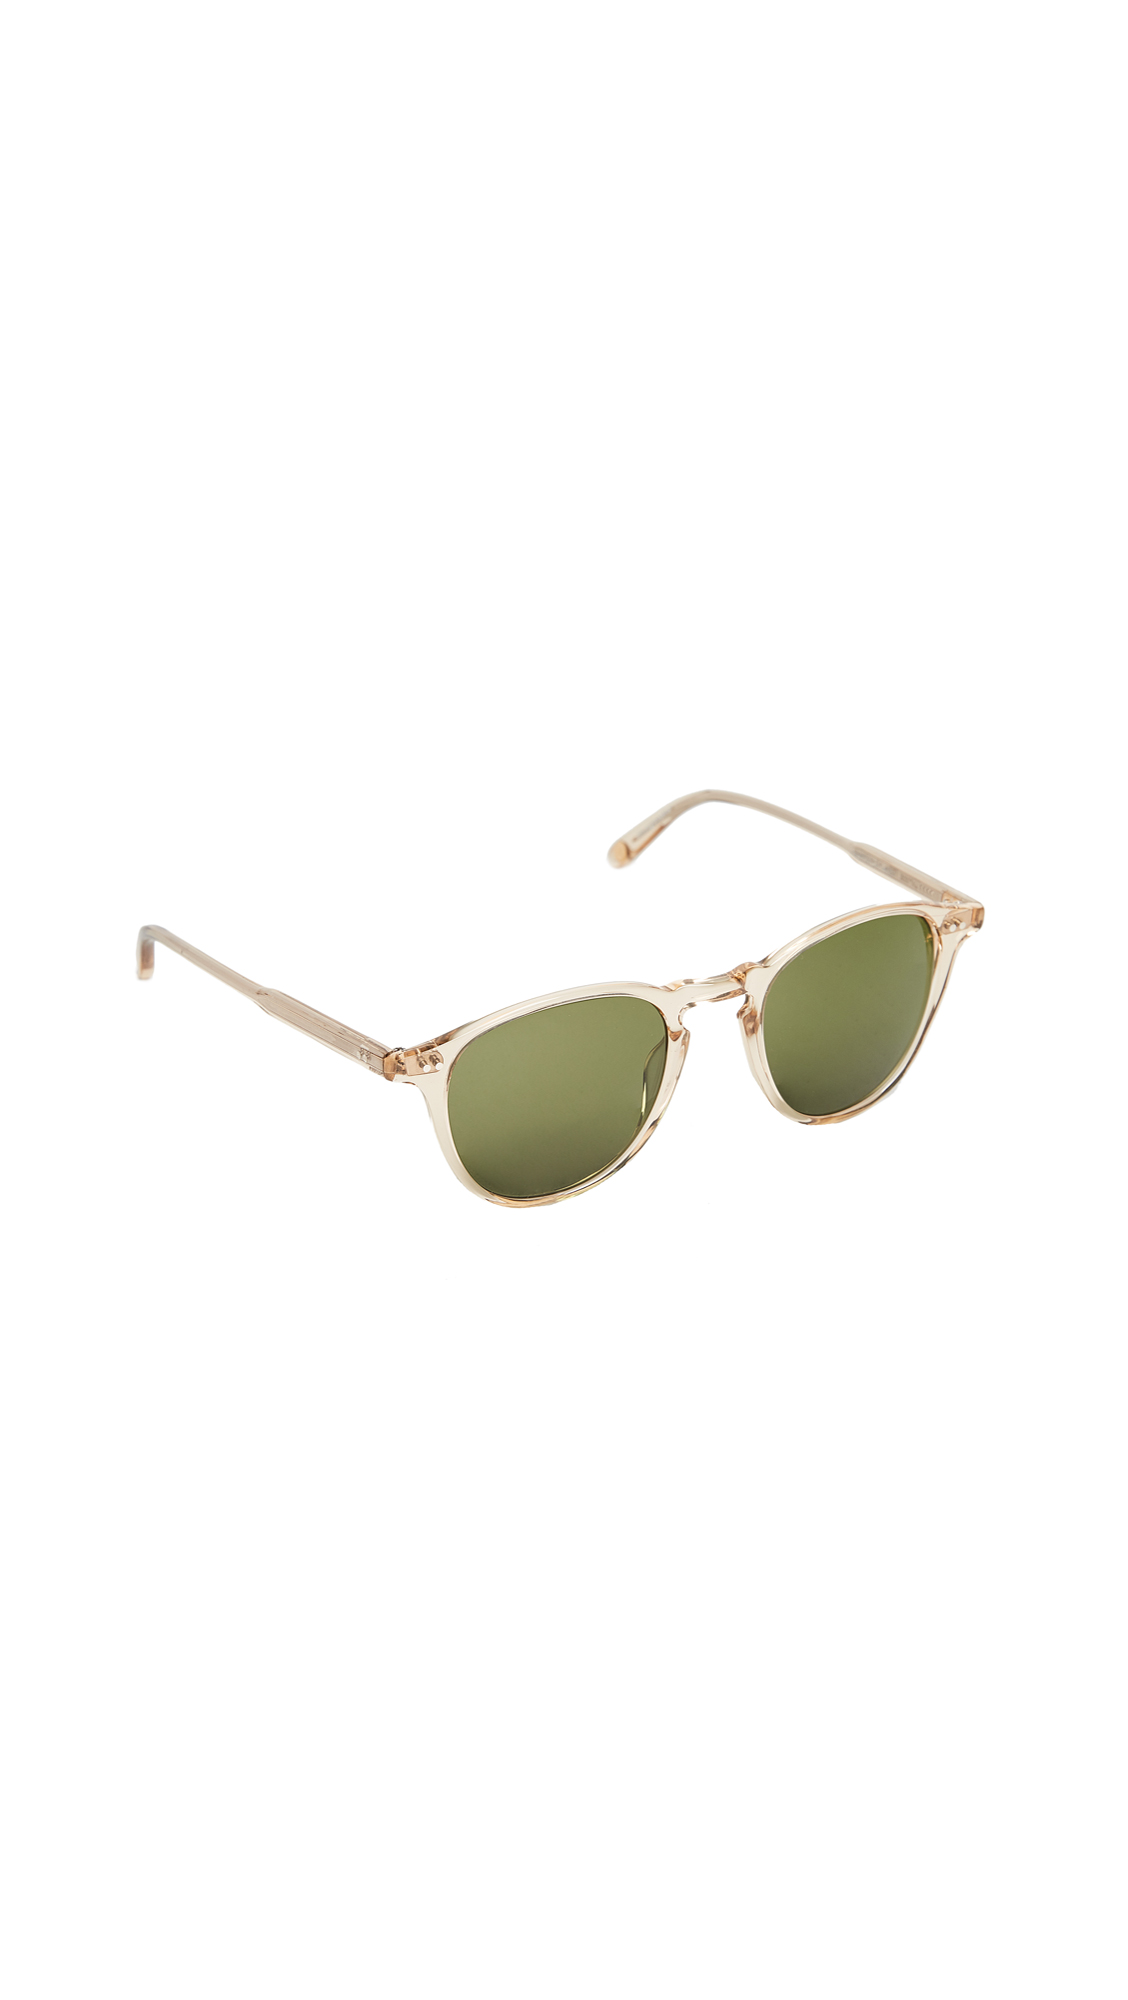 GARRETT LEIGHT Hampton Sunglasses - Champagne/Pure Green